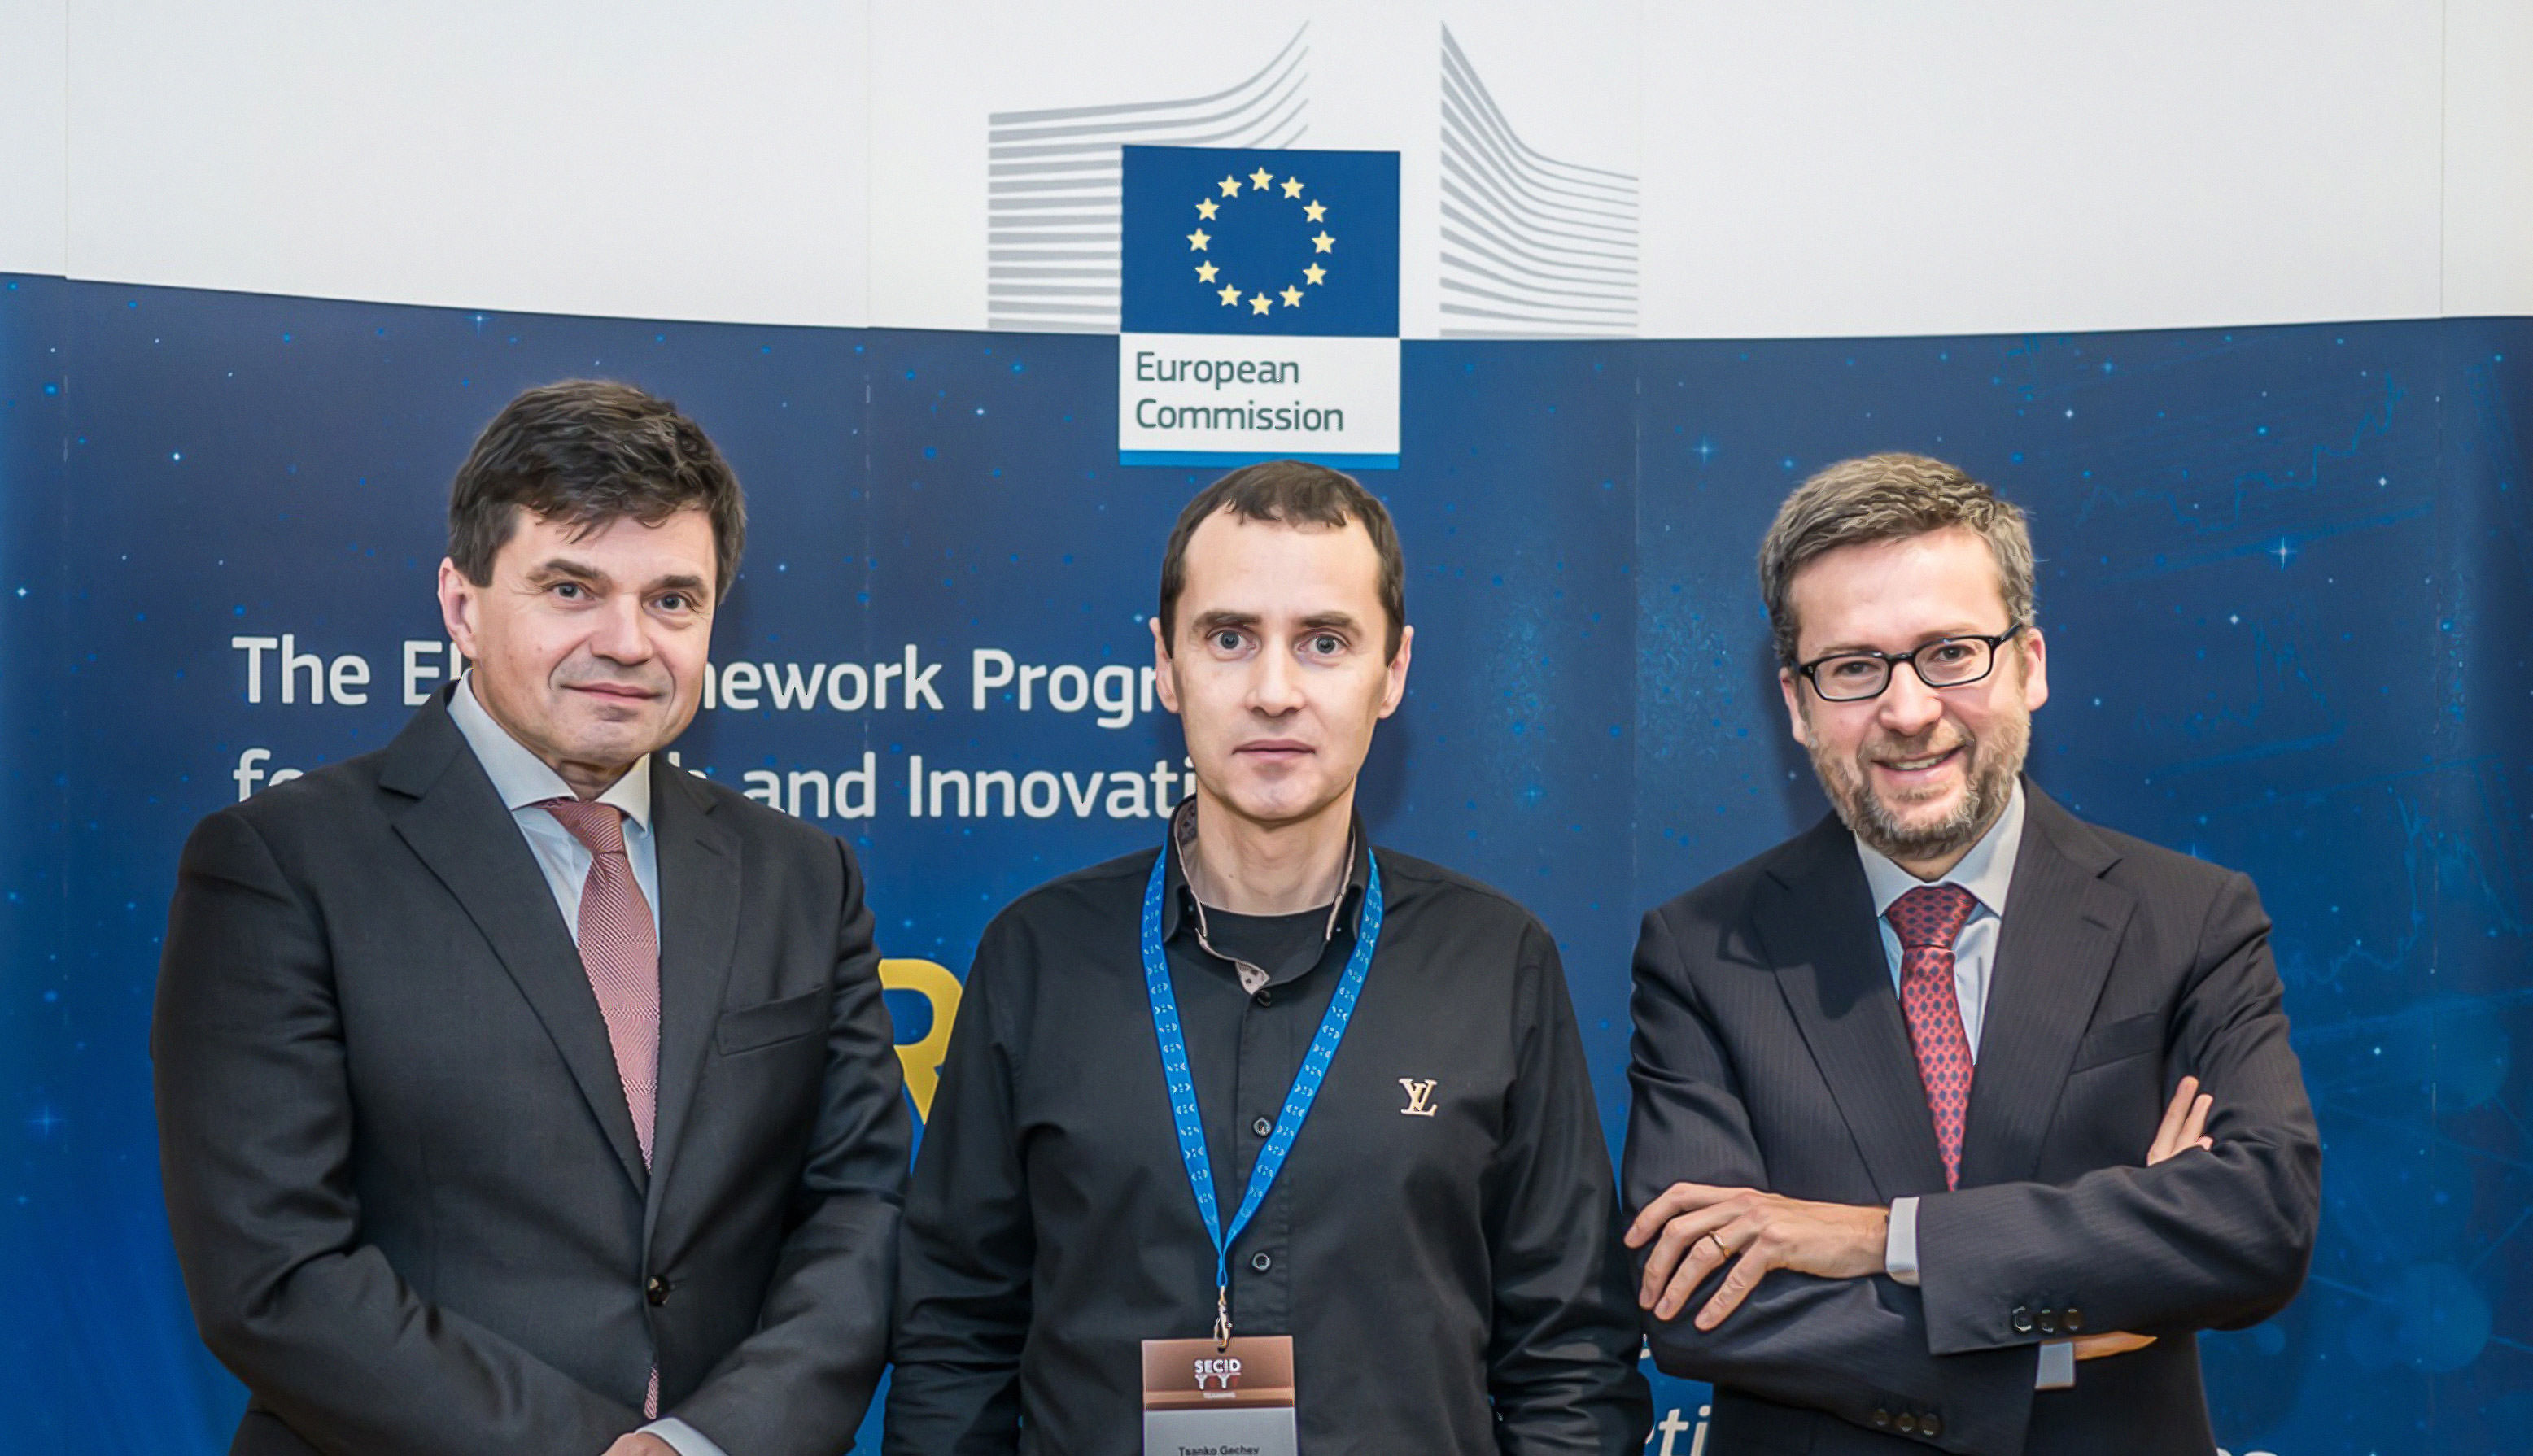 <div class='gray_box' style='opacity: 0.75;text-align:center;font-size:20px;line-height:30px;'> <strong>Meeting of the CPSBB Director Dr. Gechev with the the EU Commissioner for <br>Research and Innovation Carlos Moedas and the Minister of Education, Science, Research and Sport of the Slovak Republic Peter Plavčan